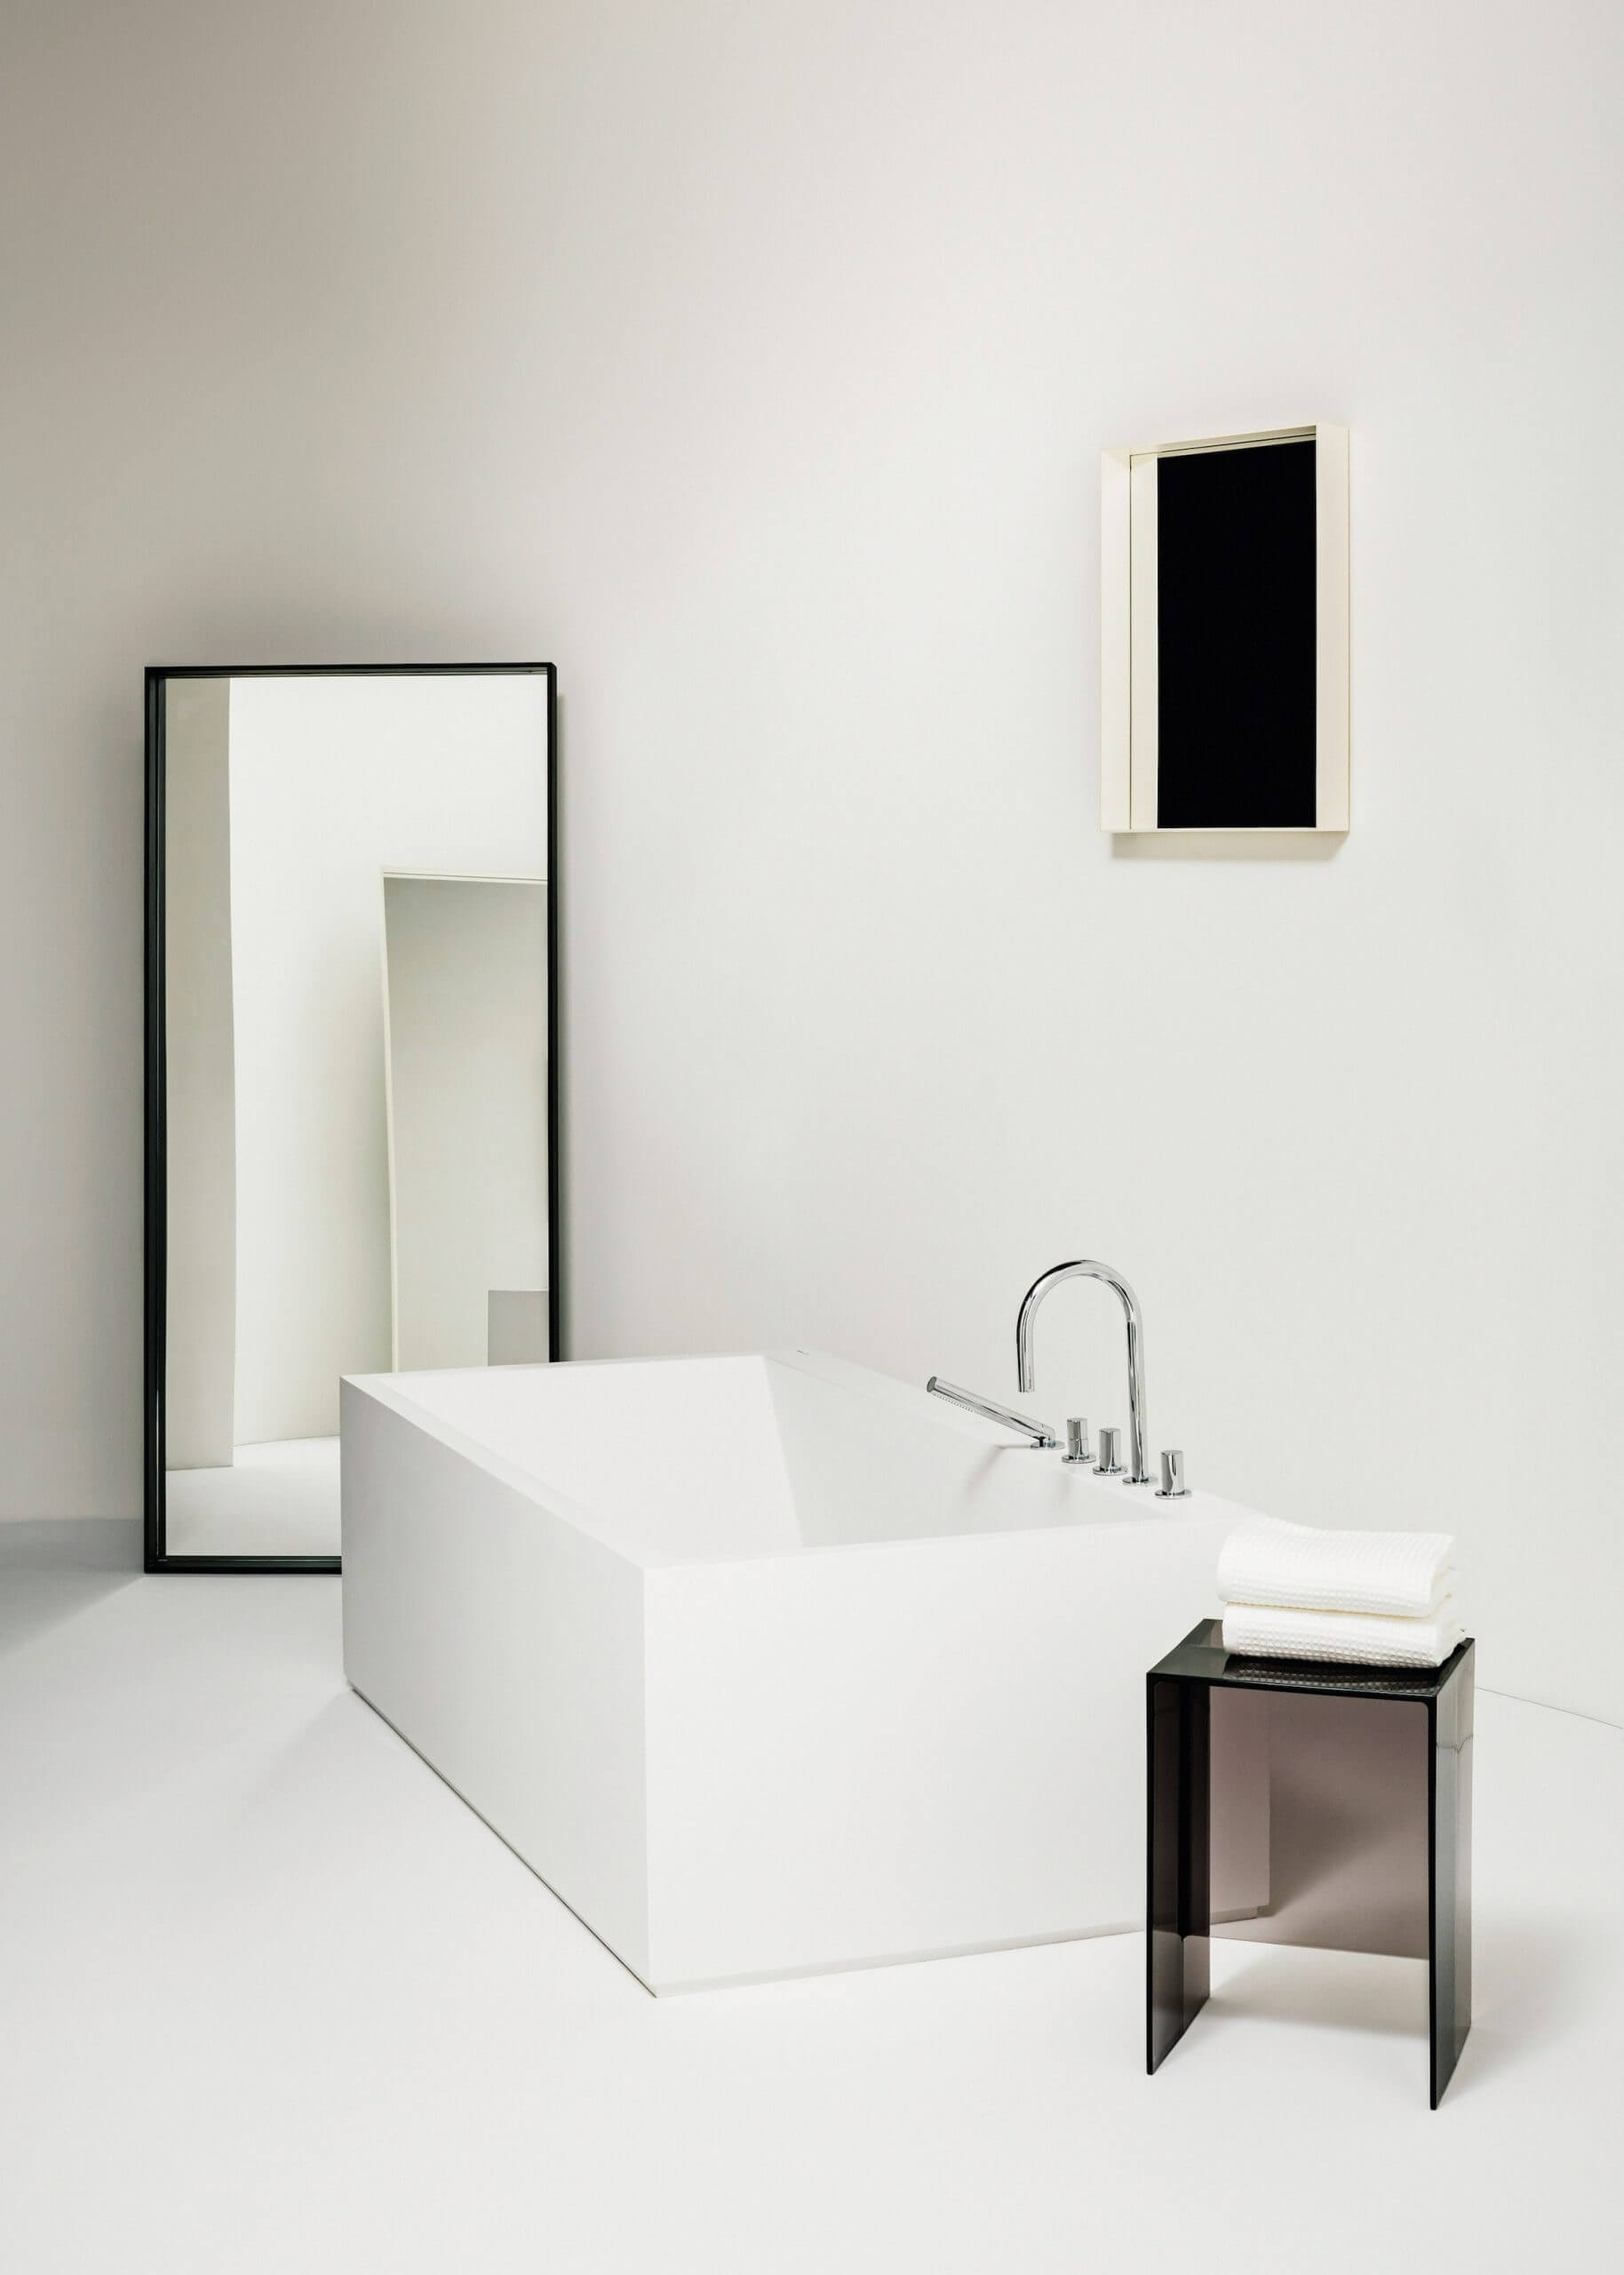 kartell by laufen bathroom products promotion dezeen 2364 col 15 scaled 1